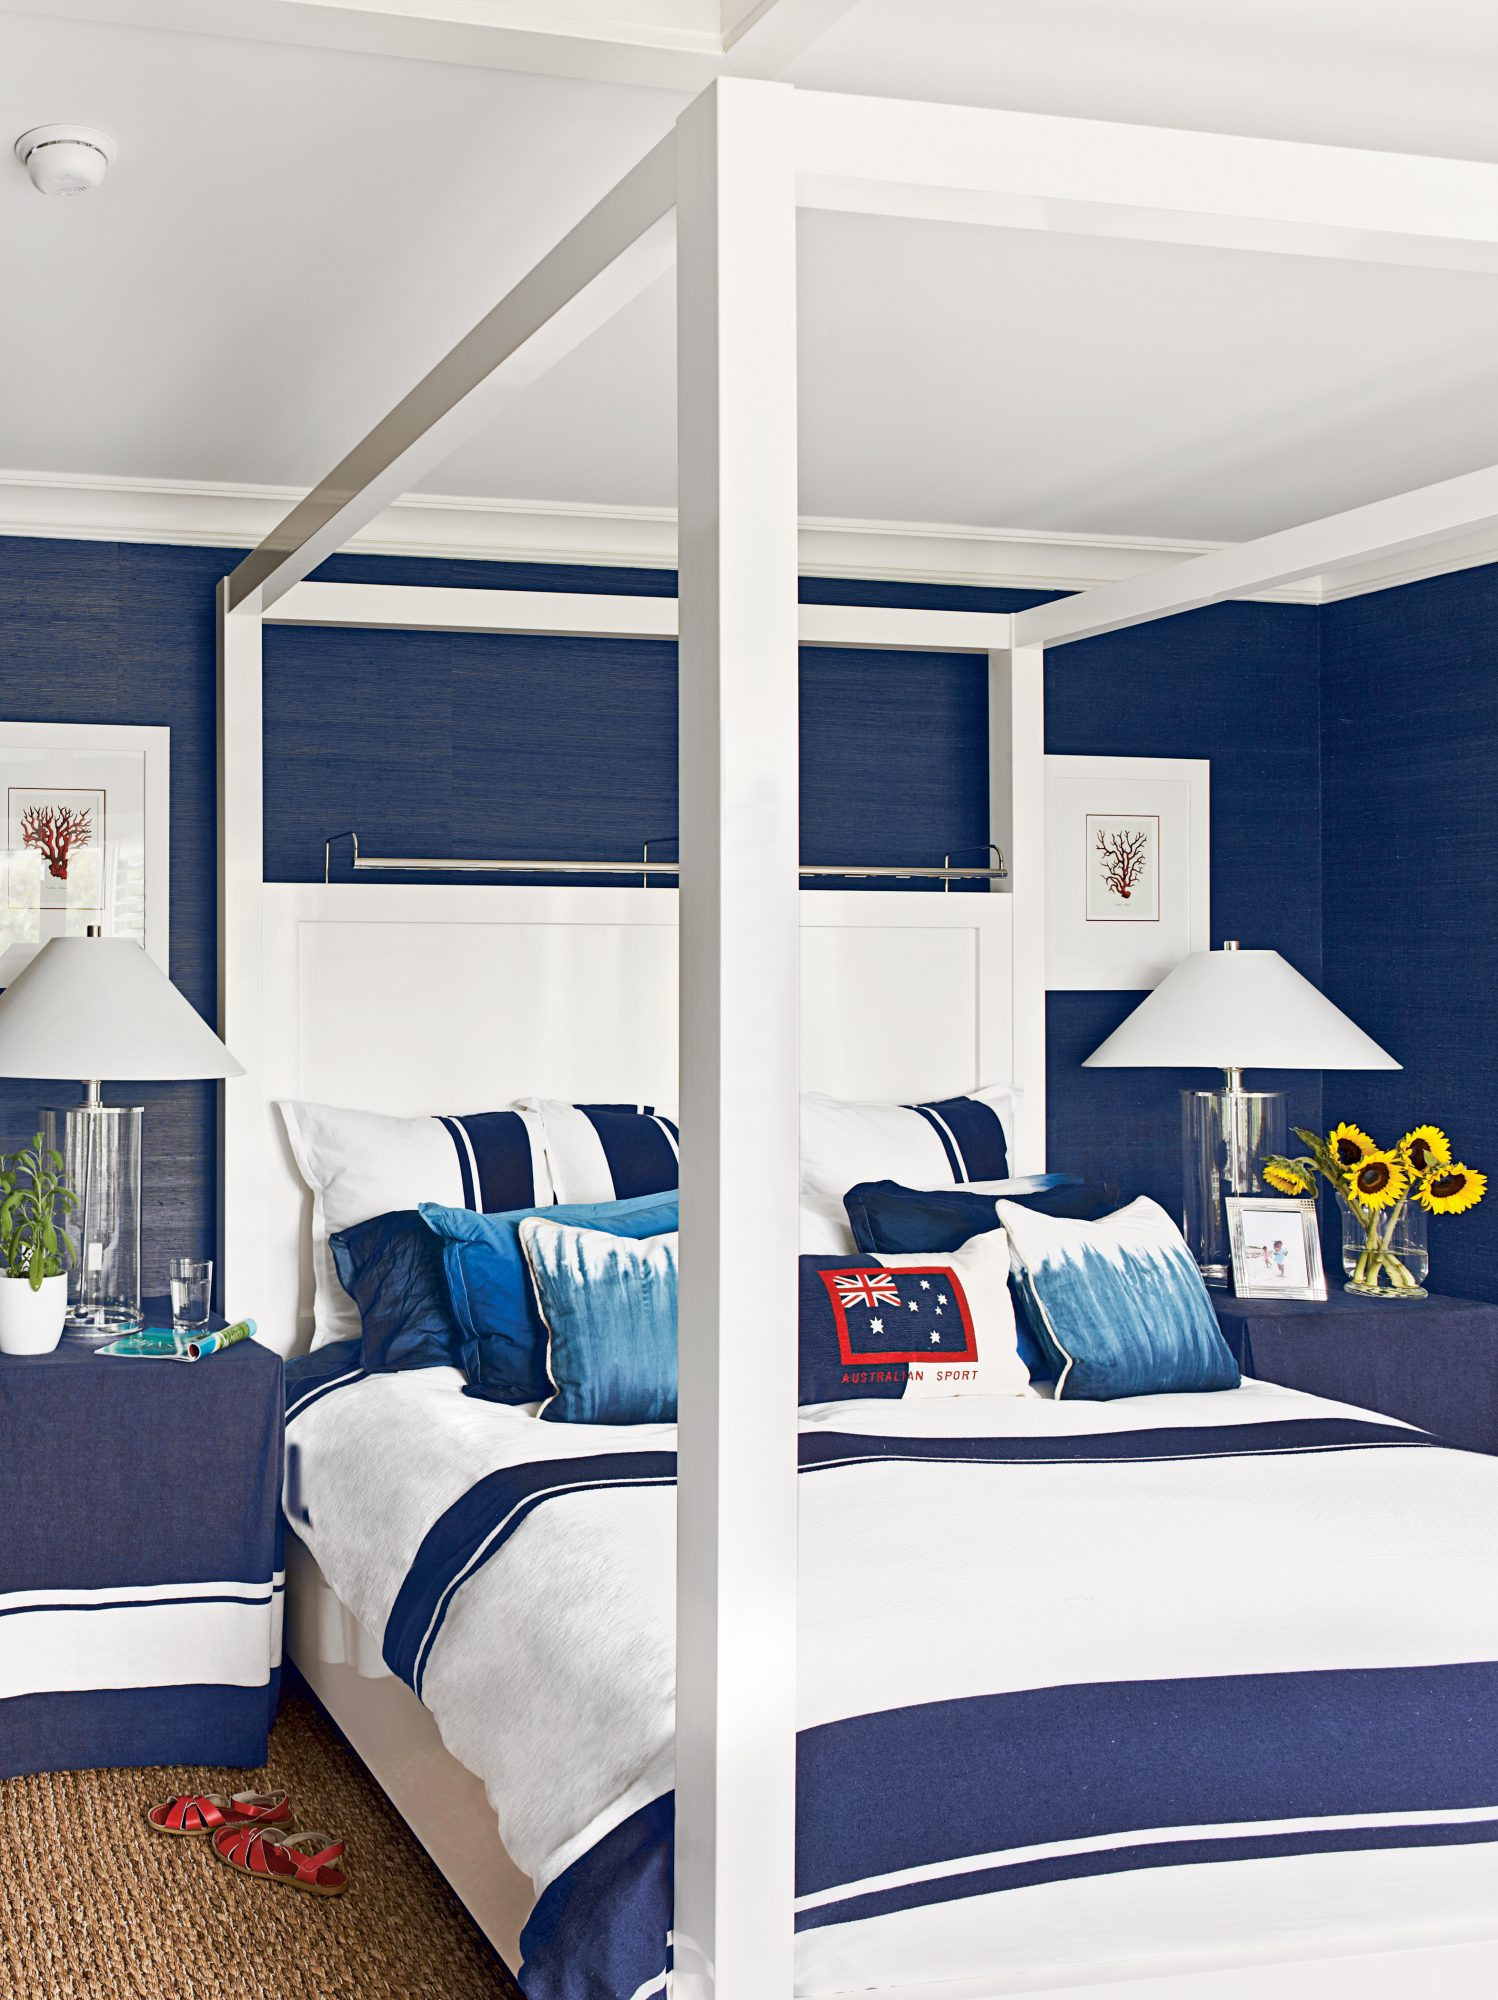 This two-tone bedroom in Hobe Sound, Florida, owned by Greg Norman and his interior designer wife, Kristen, is a sleek, nautical escape. Navy grasscloth wallpaper, slipcovered side tables, and striped bedding (plus fun dip-dyed accent pillows), make the r